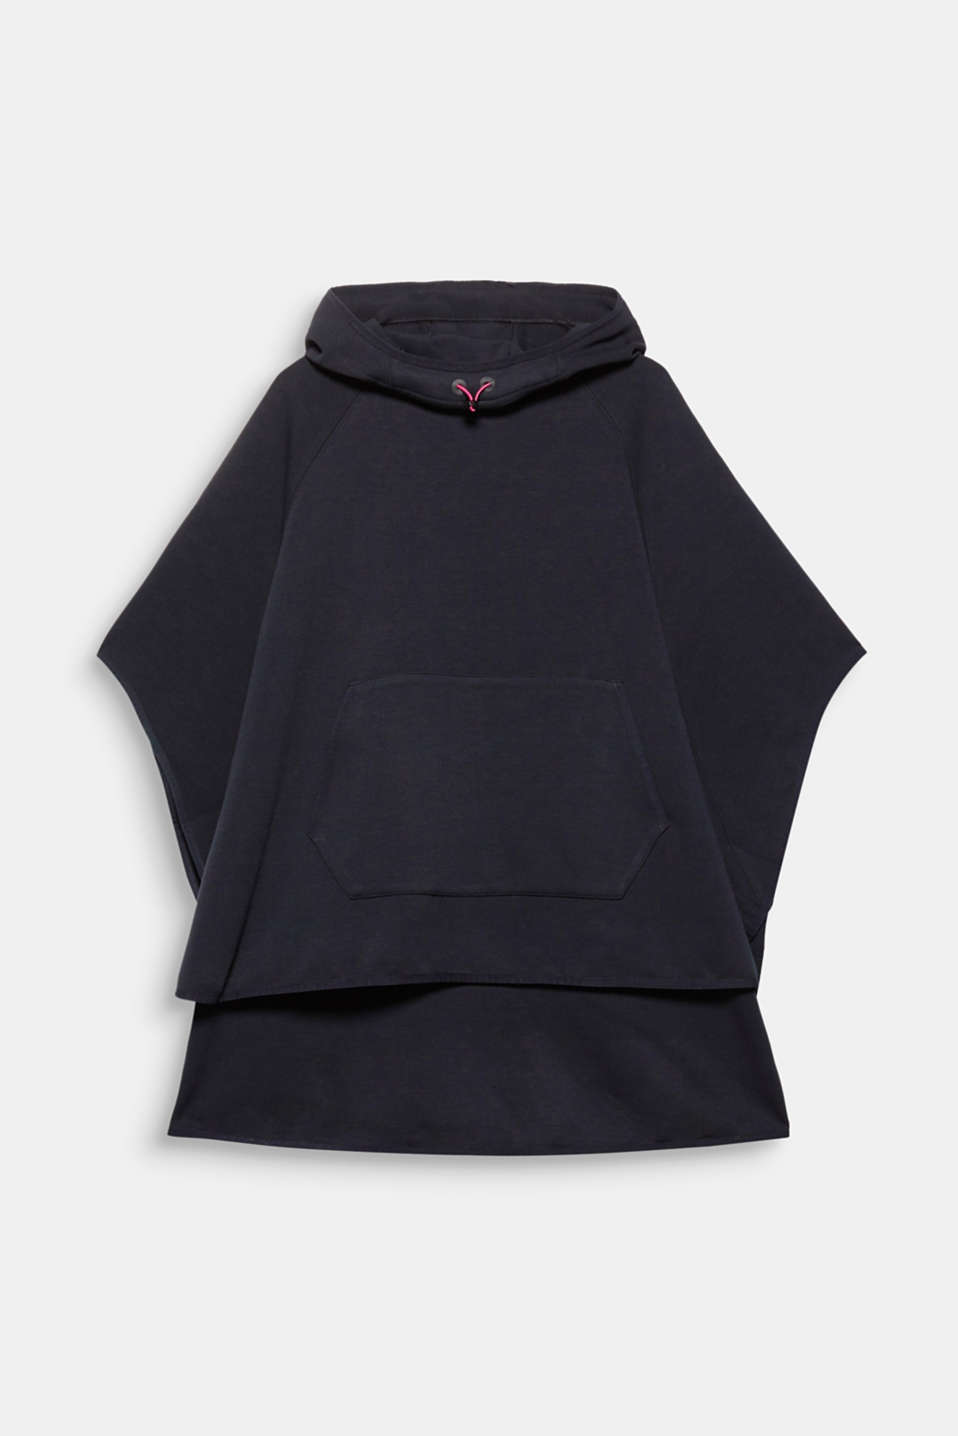 A stylish alternative to a cardigan: This hooded cape in stretch jersey is particularly casual and comfortable!